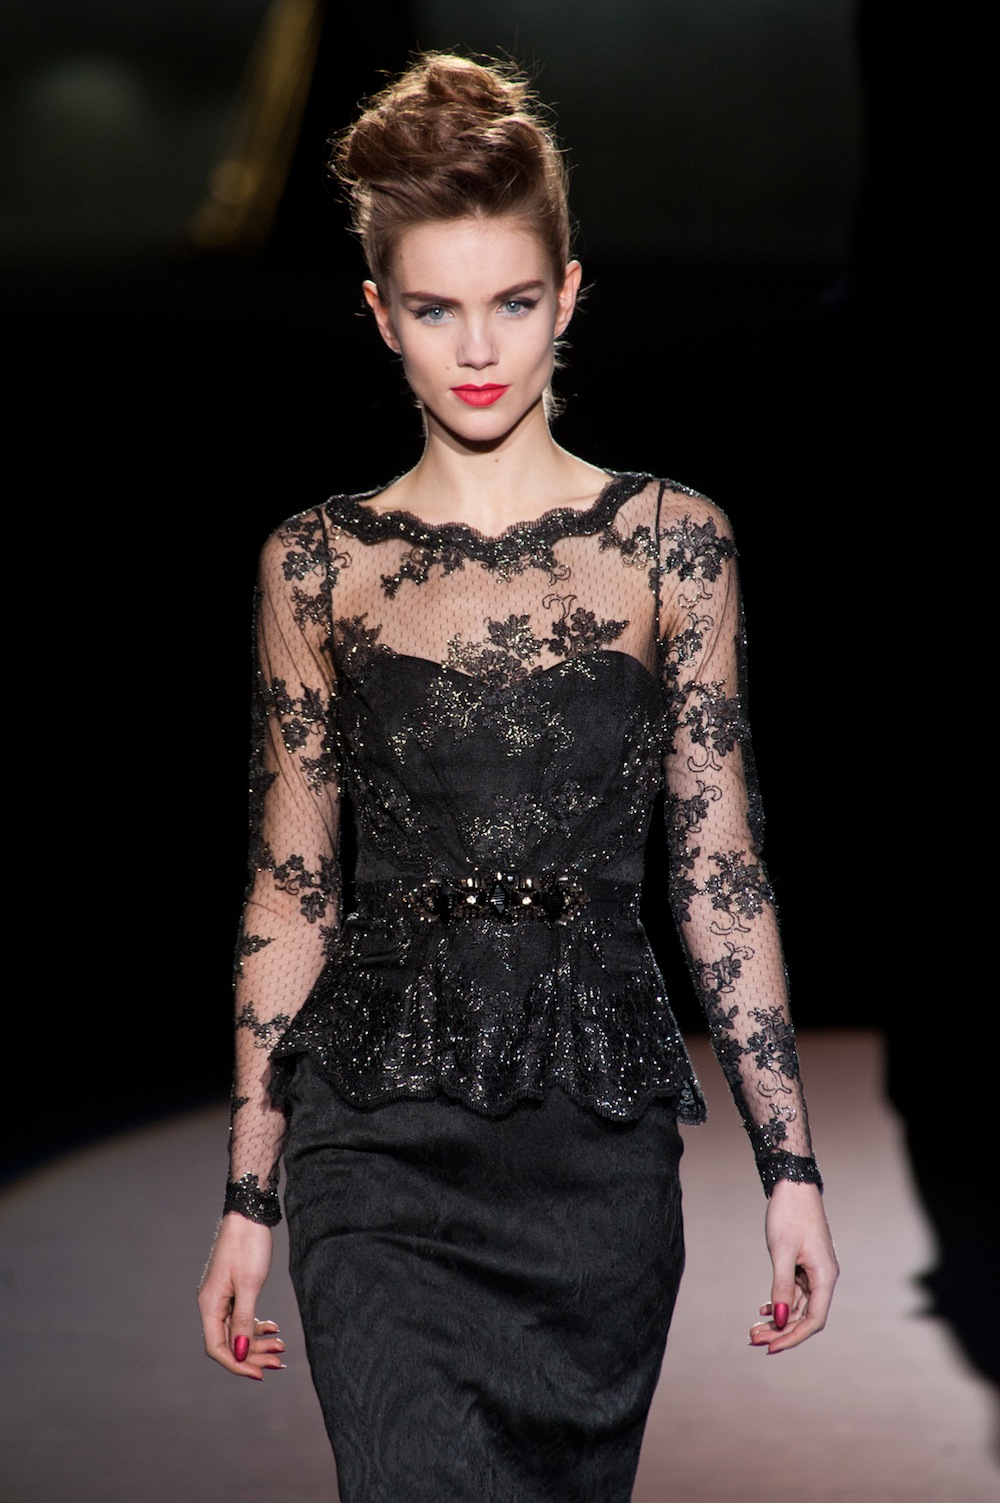 Shimmering Lace at Badgley Mischka